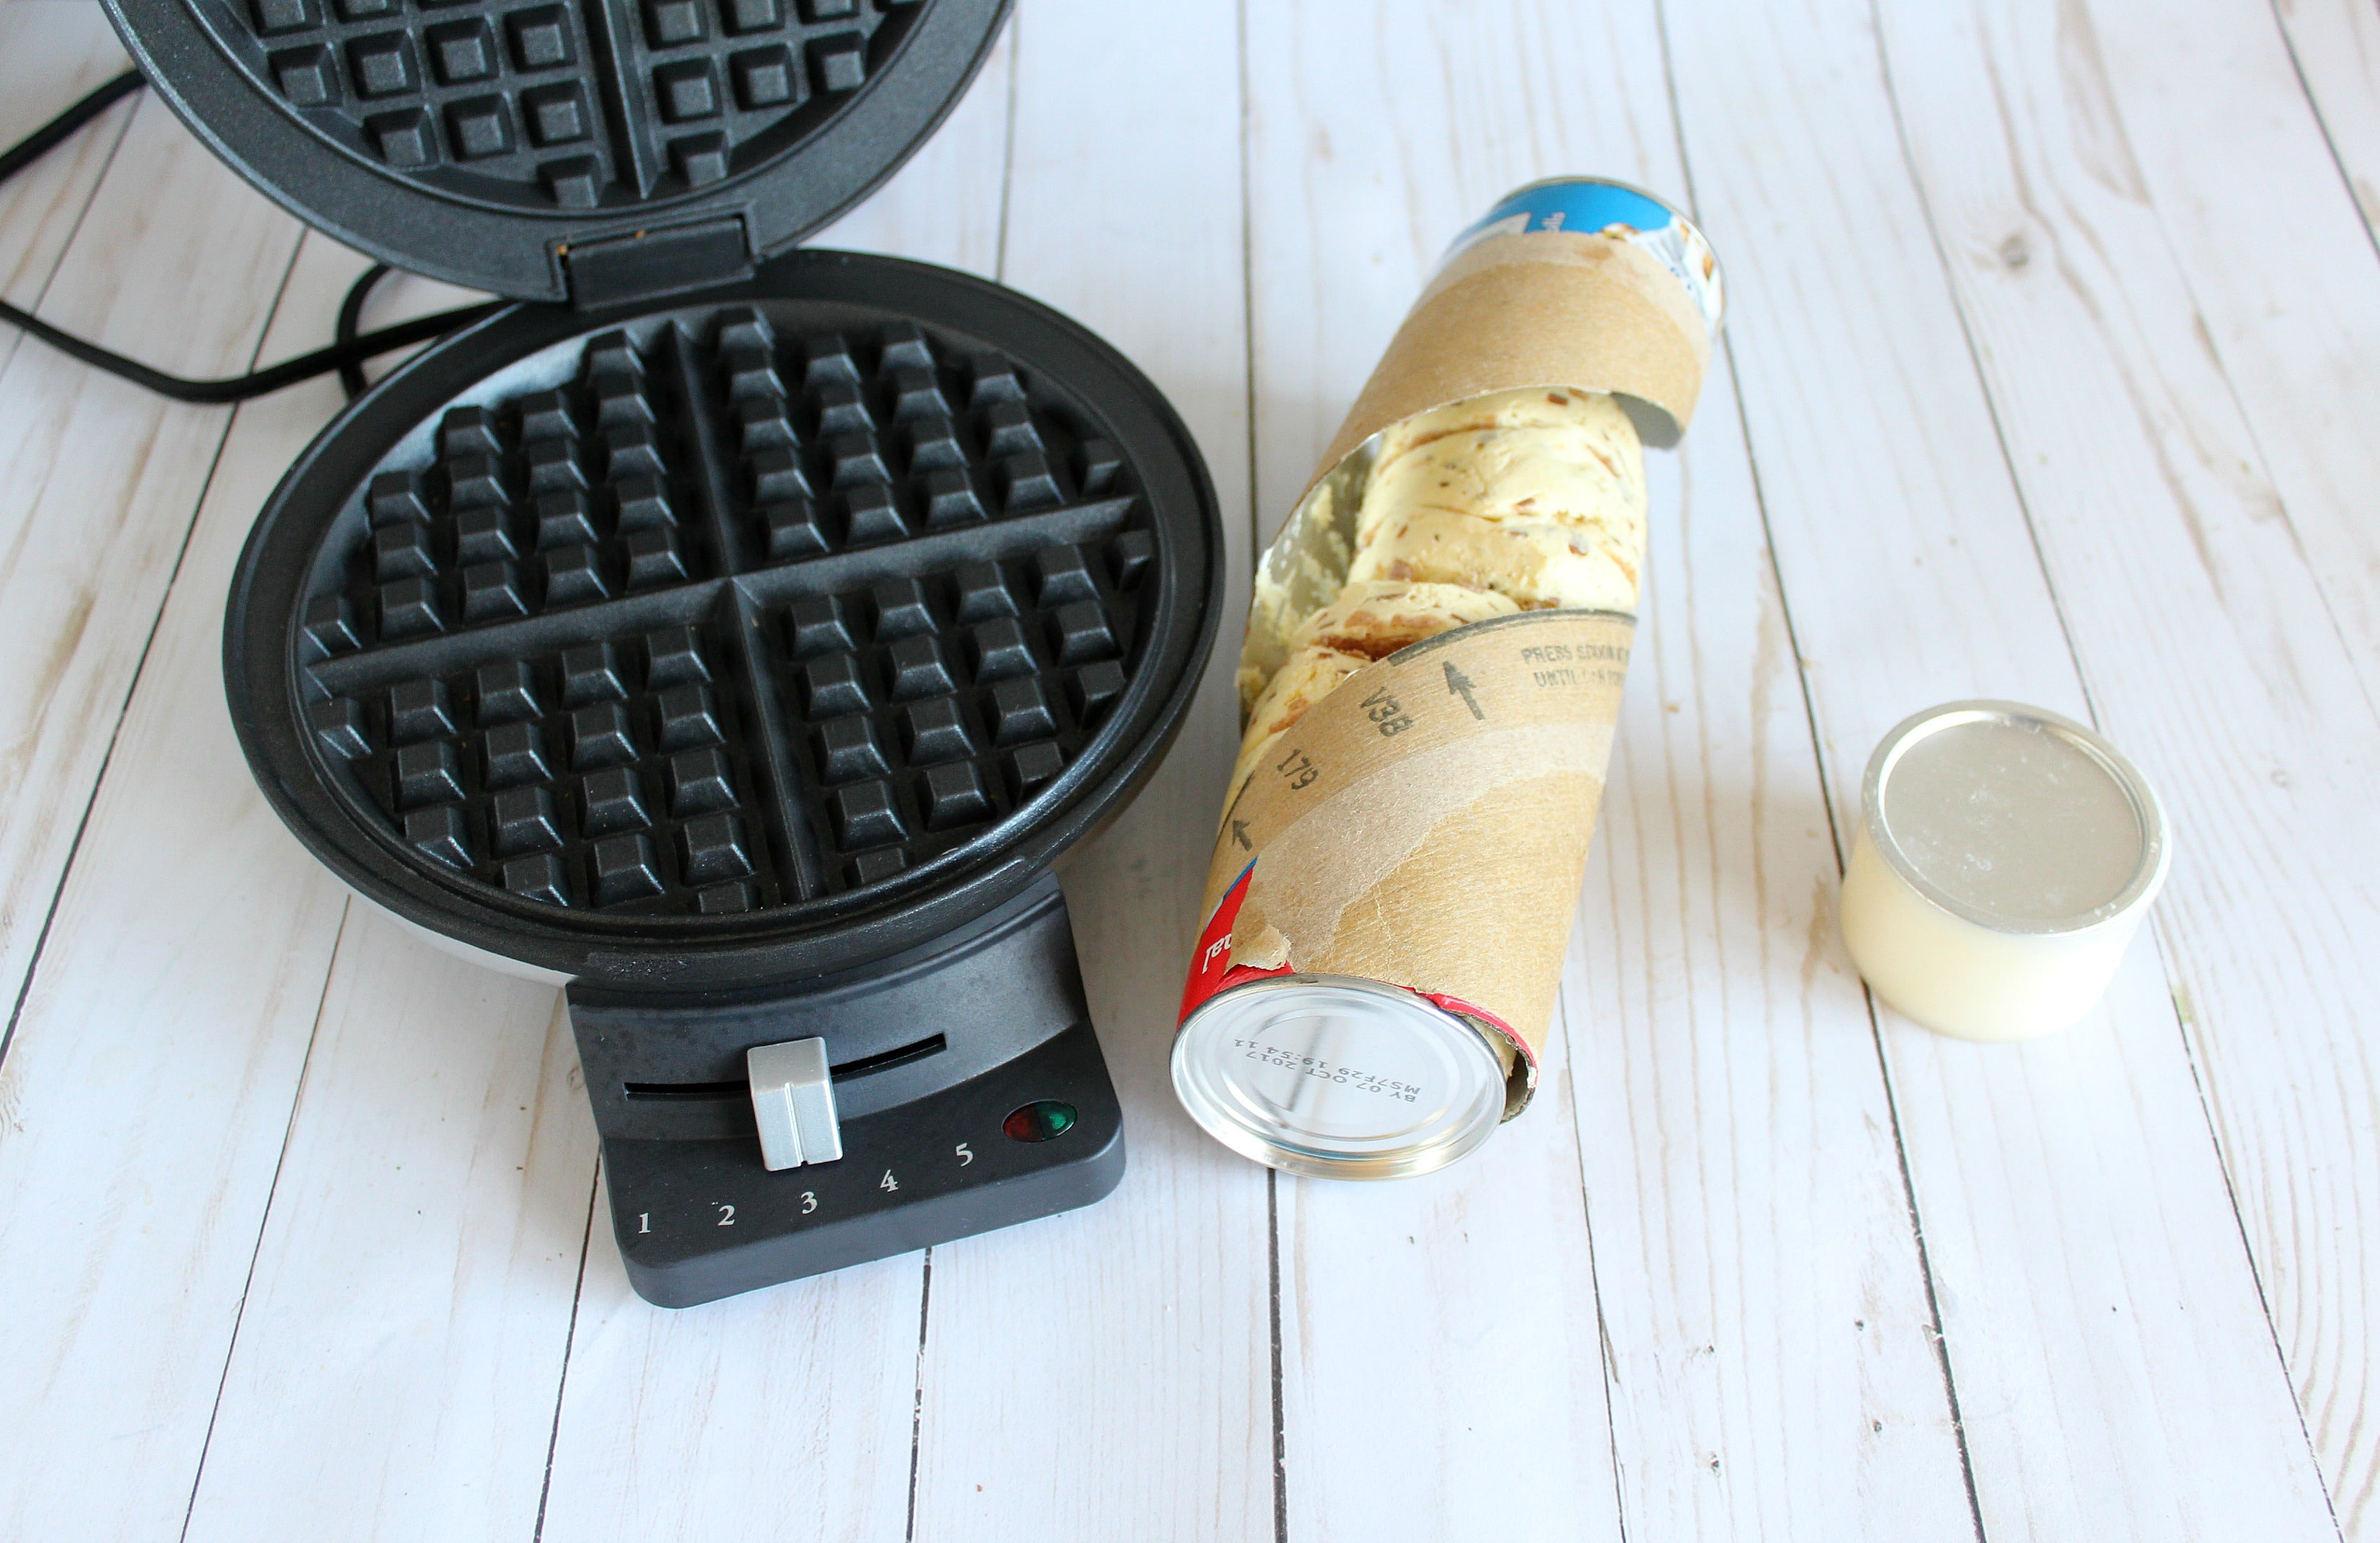 Preheat your waffle iron and prep with cooking spray